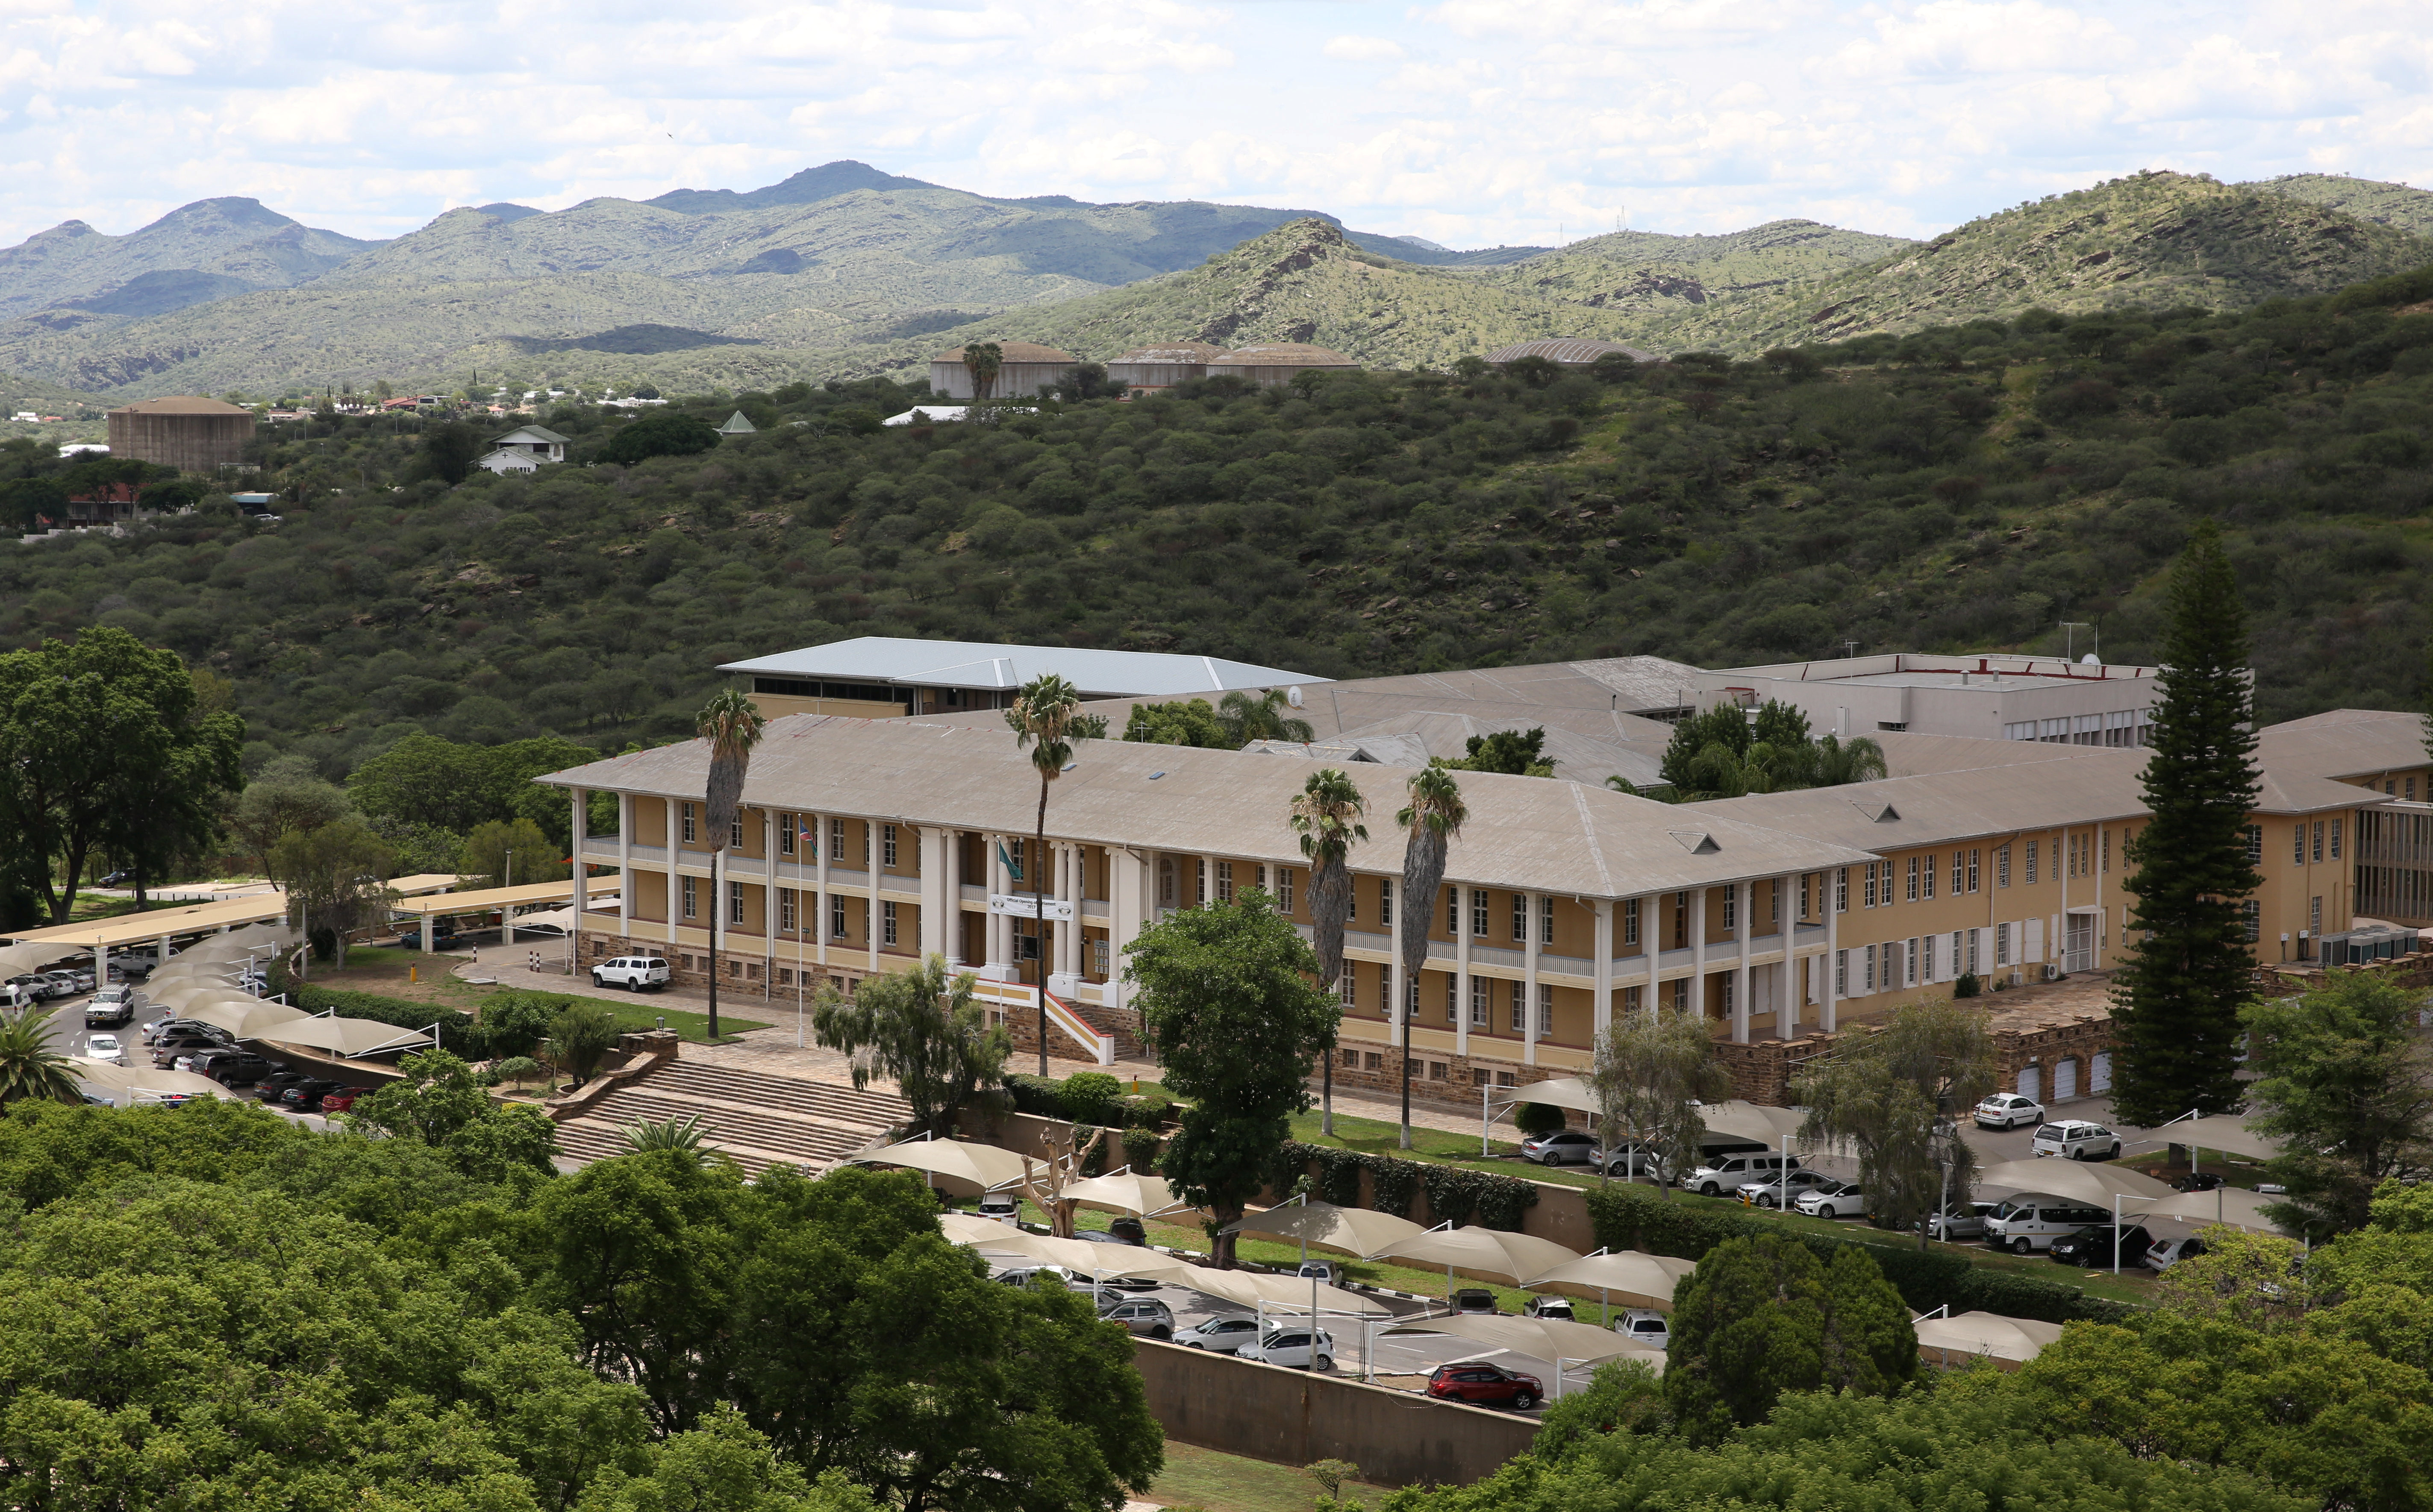 Namibia's parliament building is seen in Windhoek.